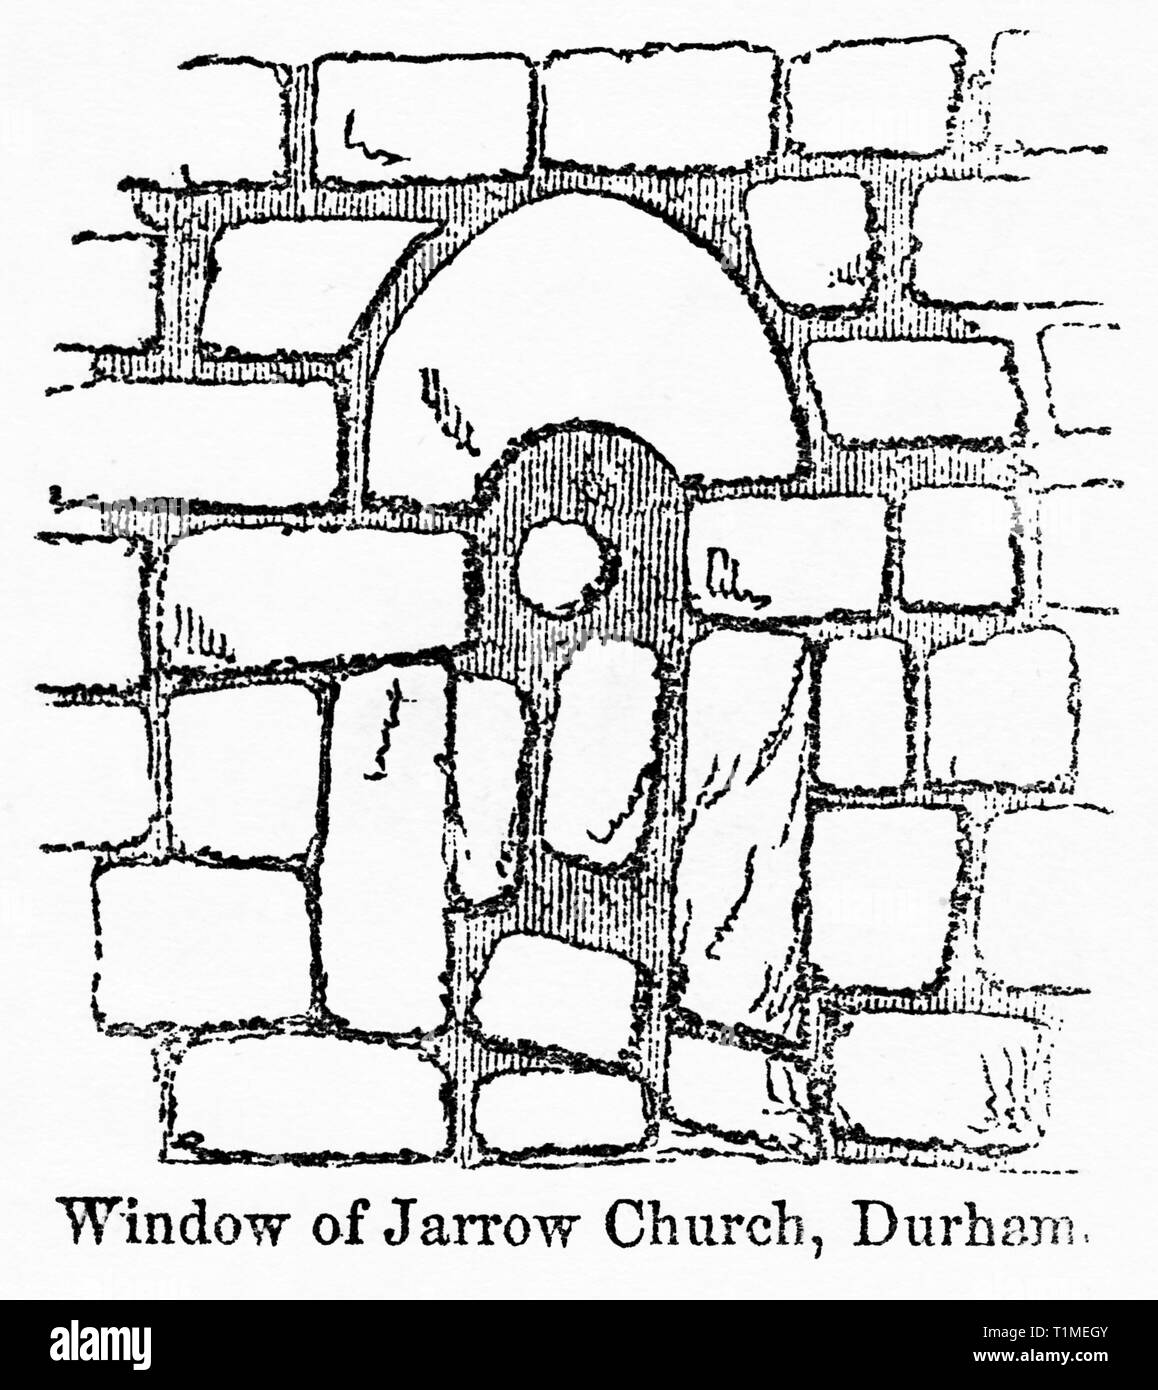 Window of Jarrow Church, Durham, Illustration from John Cassell's Illustrated History of England, Vol. I from the earliest period to the reign of Edward the Fourth, Cassell, Petter and Galpin, 1857 - Stock Image